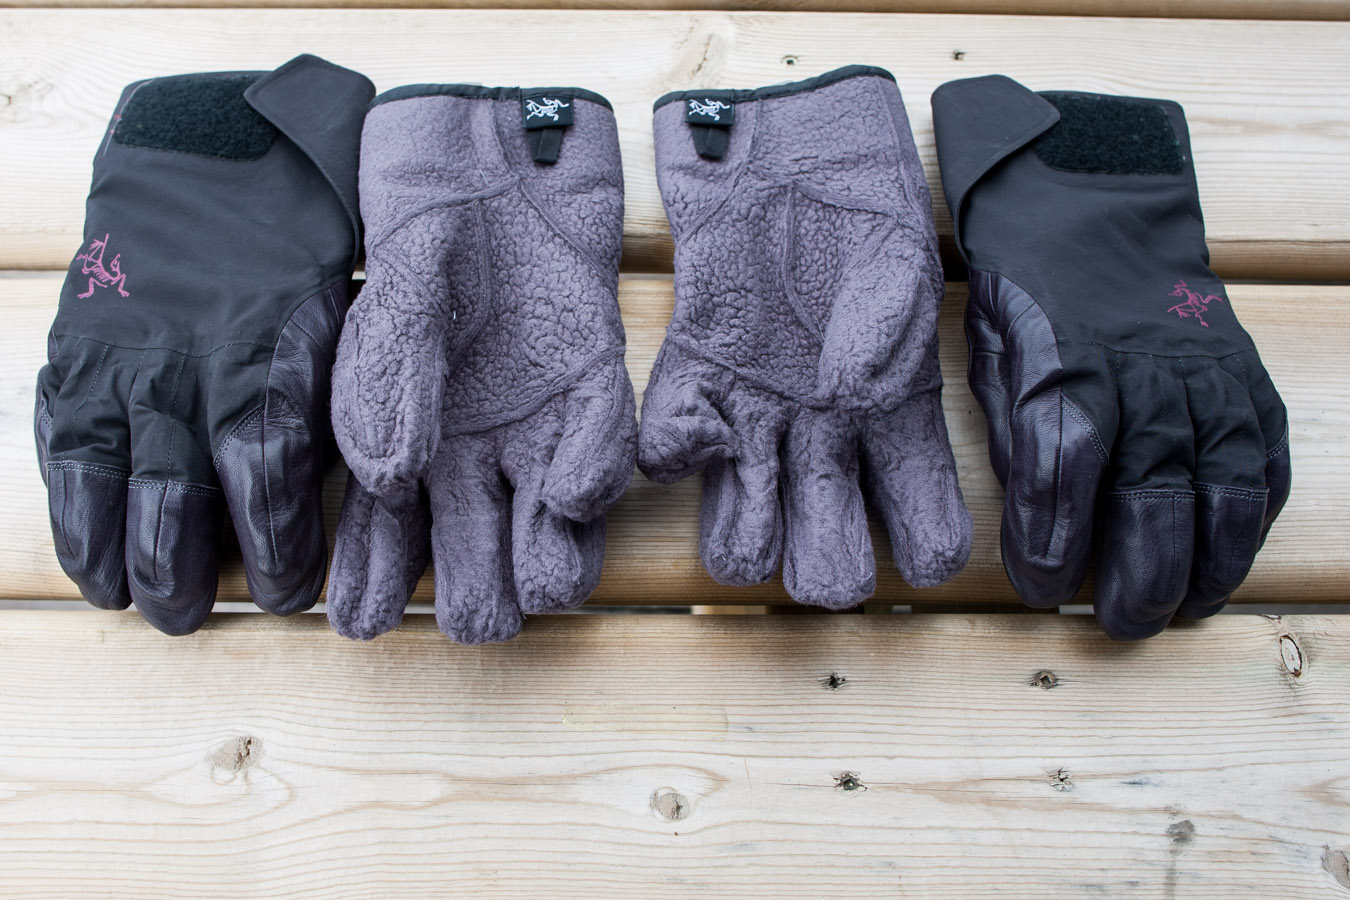 Osprey mens leather gloves - Arcteryx Tactician Ar Gloves Men S Medium Natural 75 Amazingly Well Cut Gloves They Feel Like Well A Glove Supple But Tough Leather Throughout